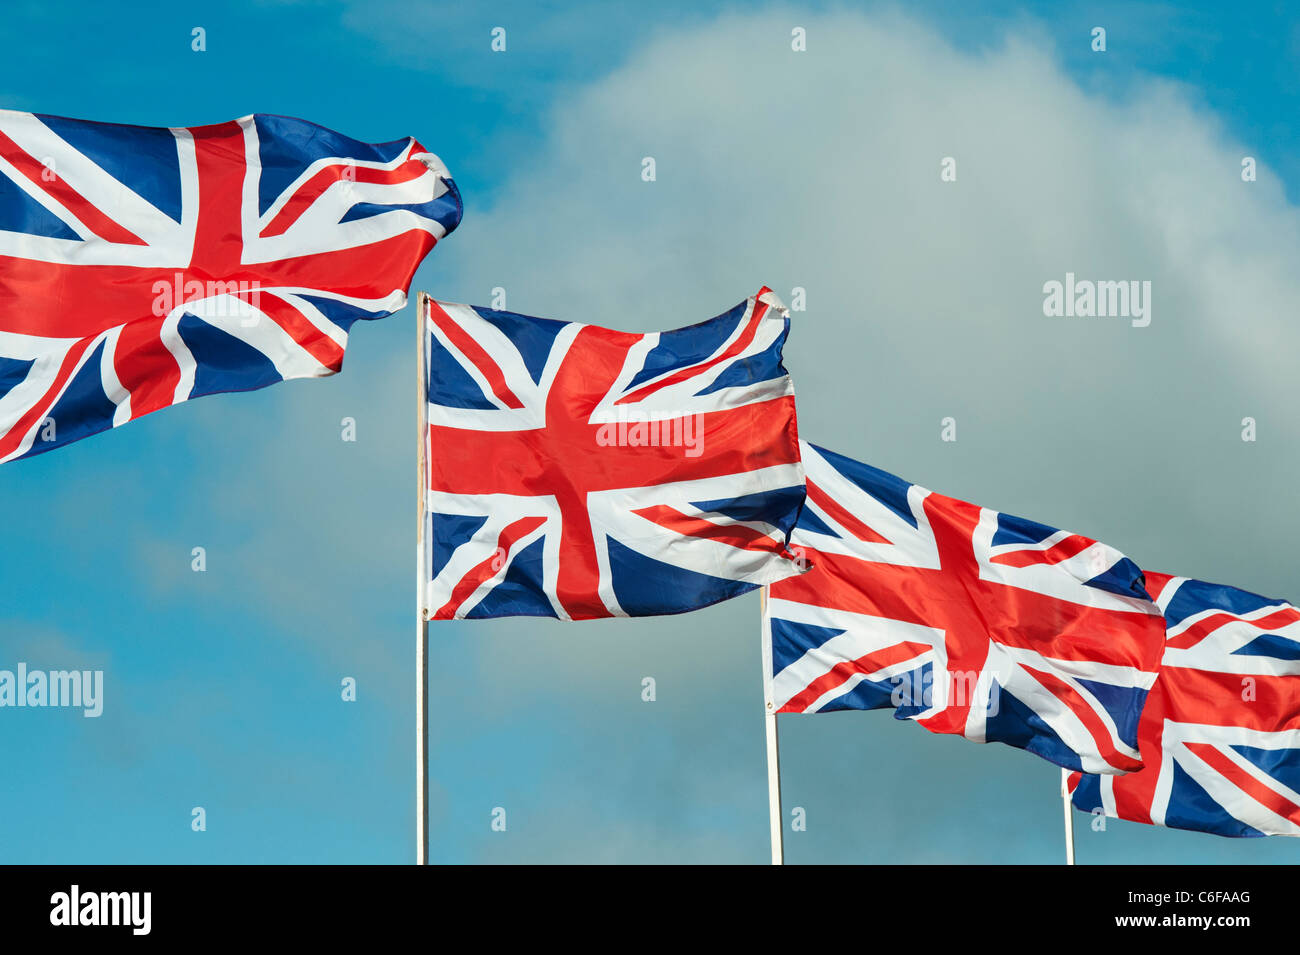 Four Union Jack flags flapping in the wind against a blue sky - Stock Image